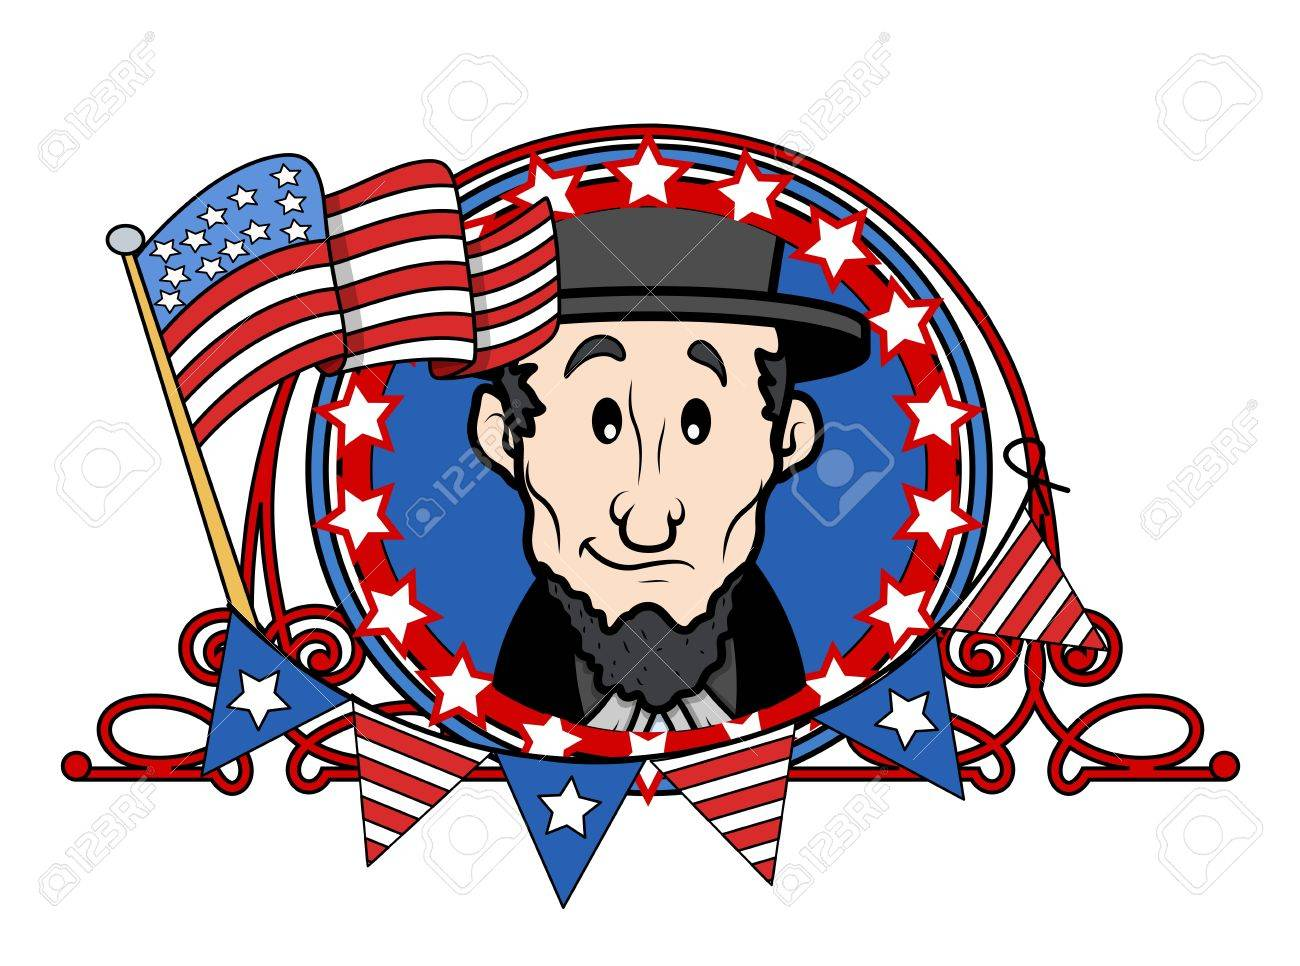 Abraham Lincoln Cartoon Vector Illustration Royalty Free Cliparts